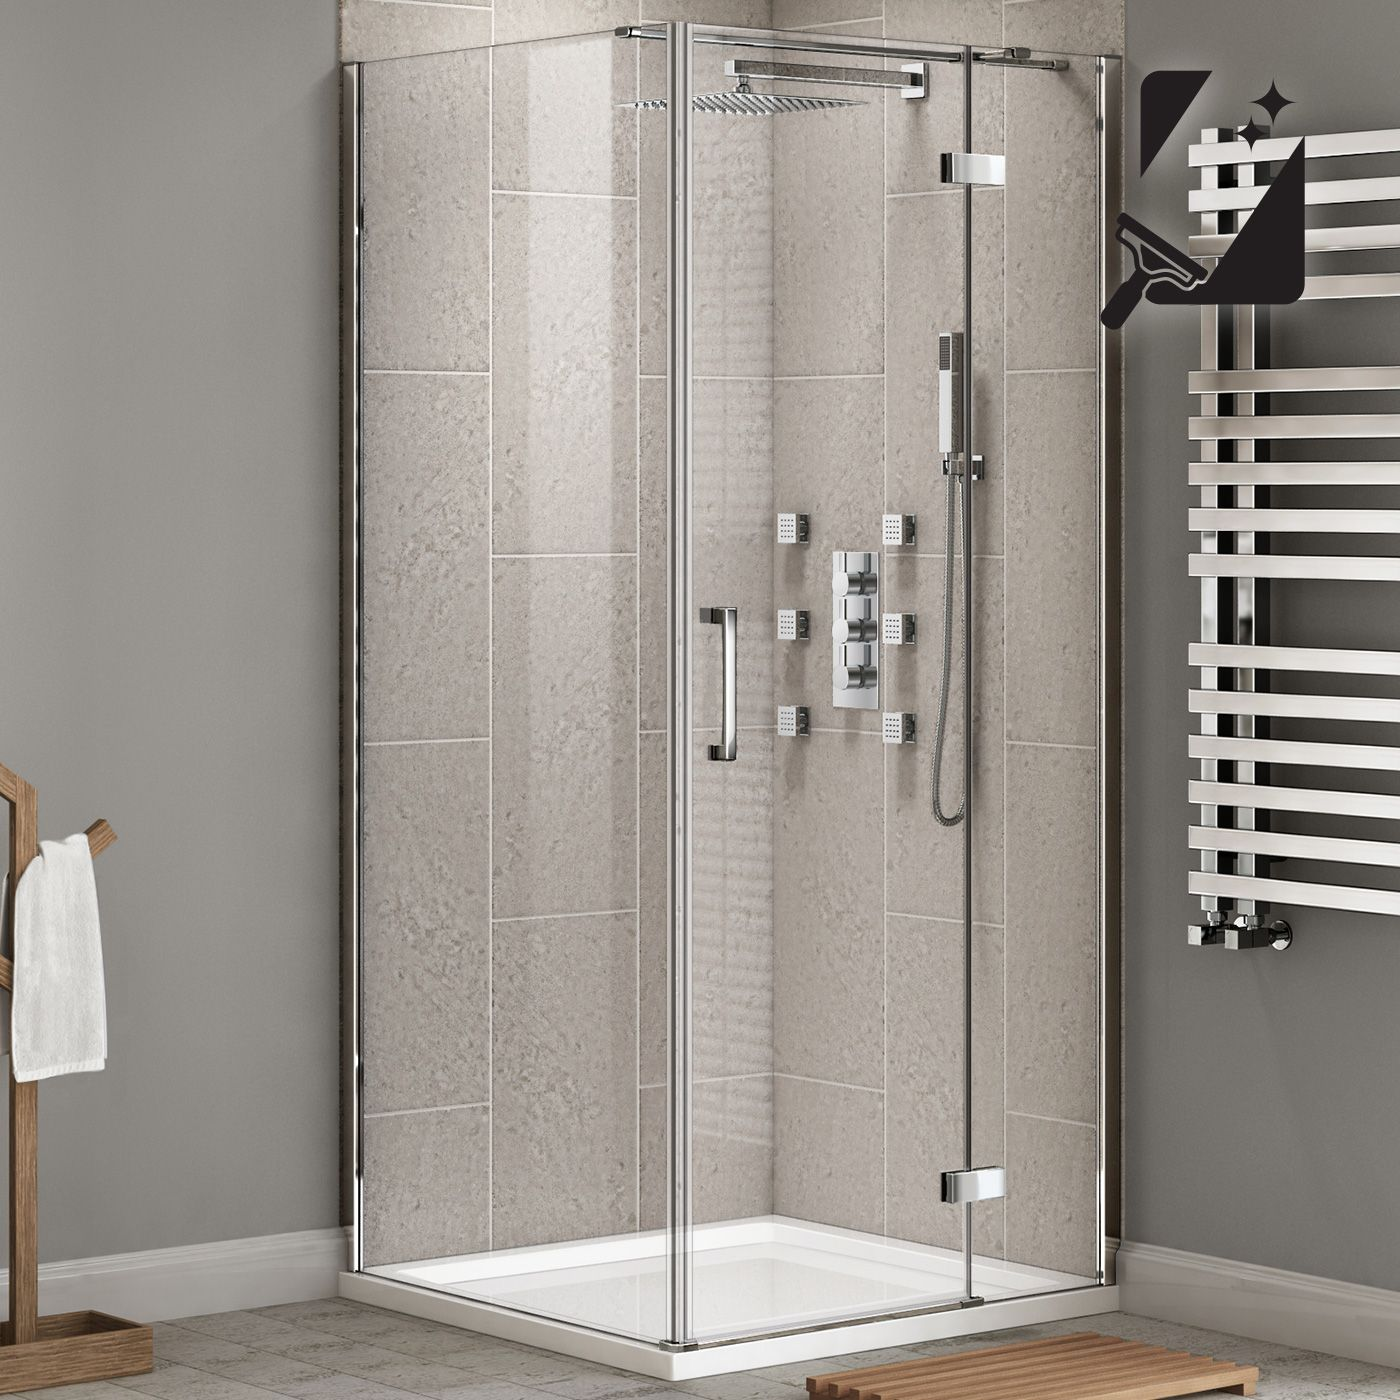 900x900mm EasyClean Hinged Door Shower Enclosure 8mm thick glass ...